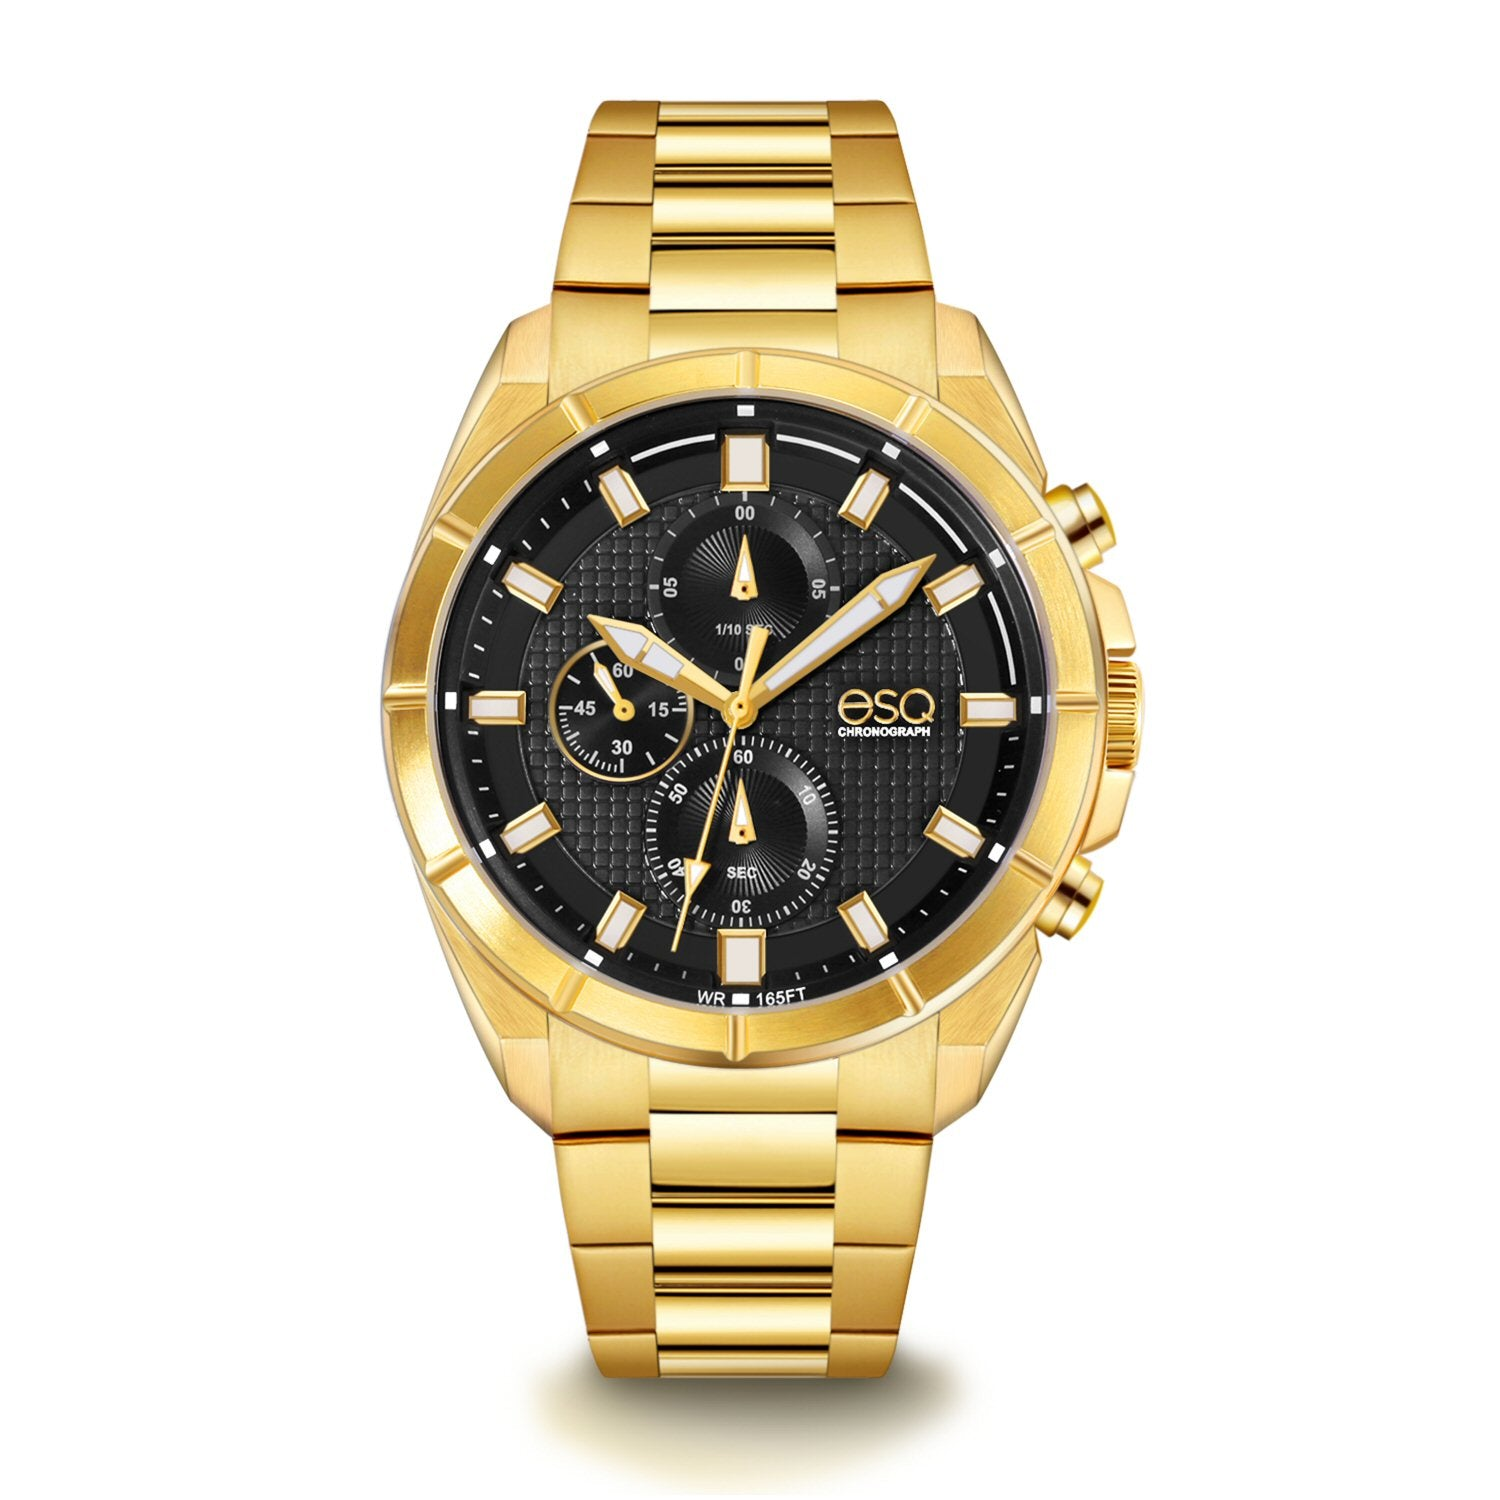 Men's ESQ0131 Gold IP Stainless Steel Chronograph Bracelet Watch with Textured Black and White Dial